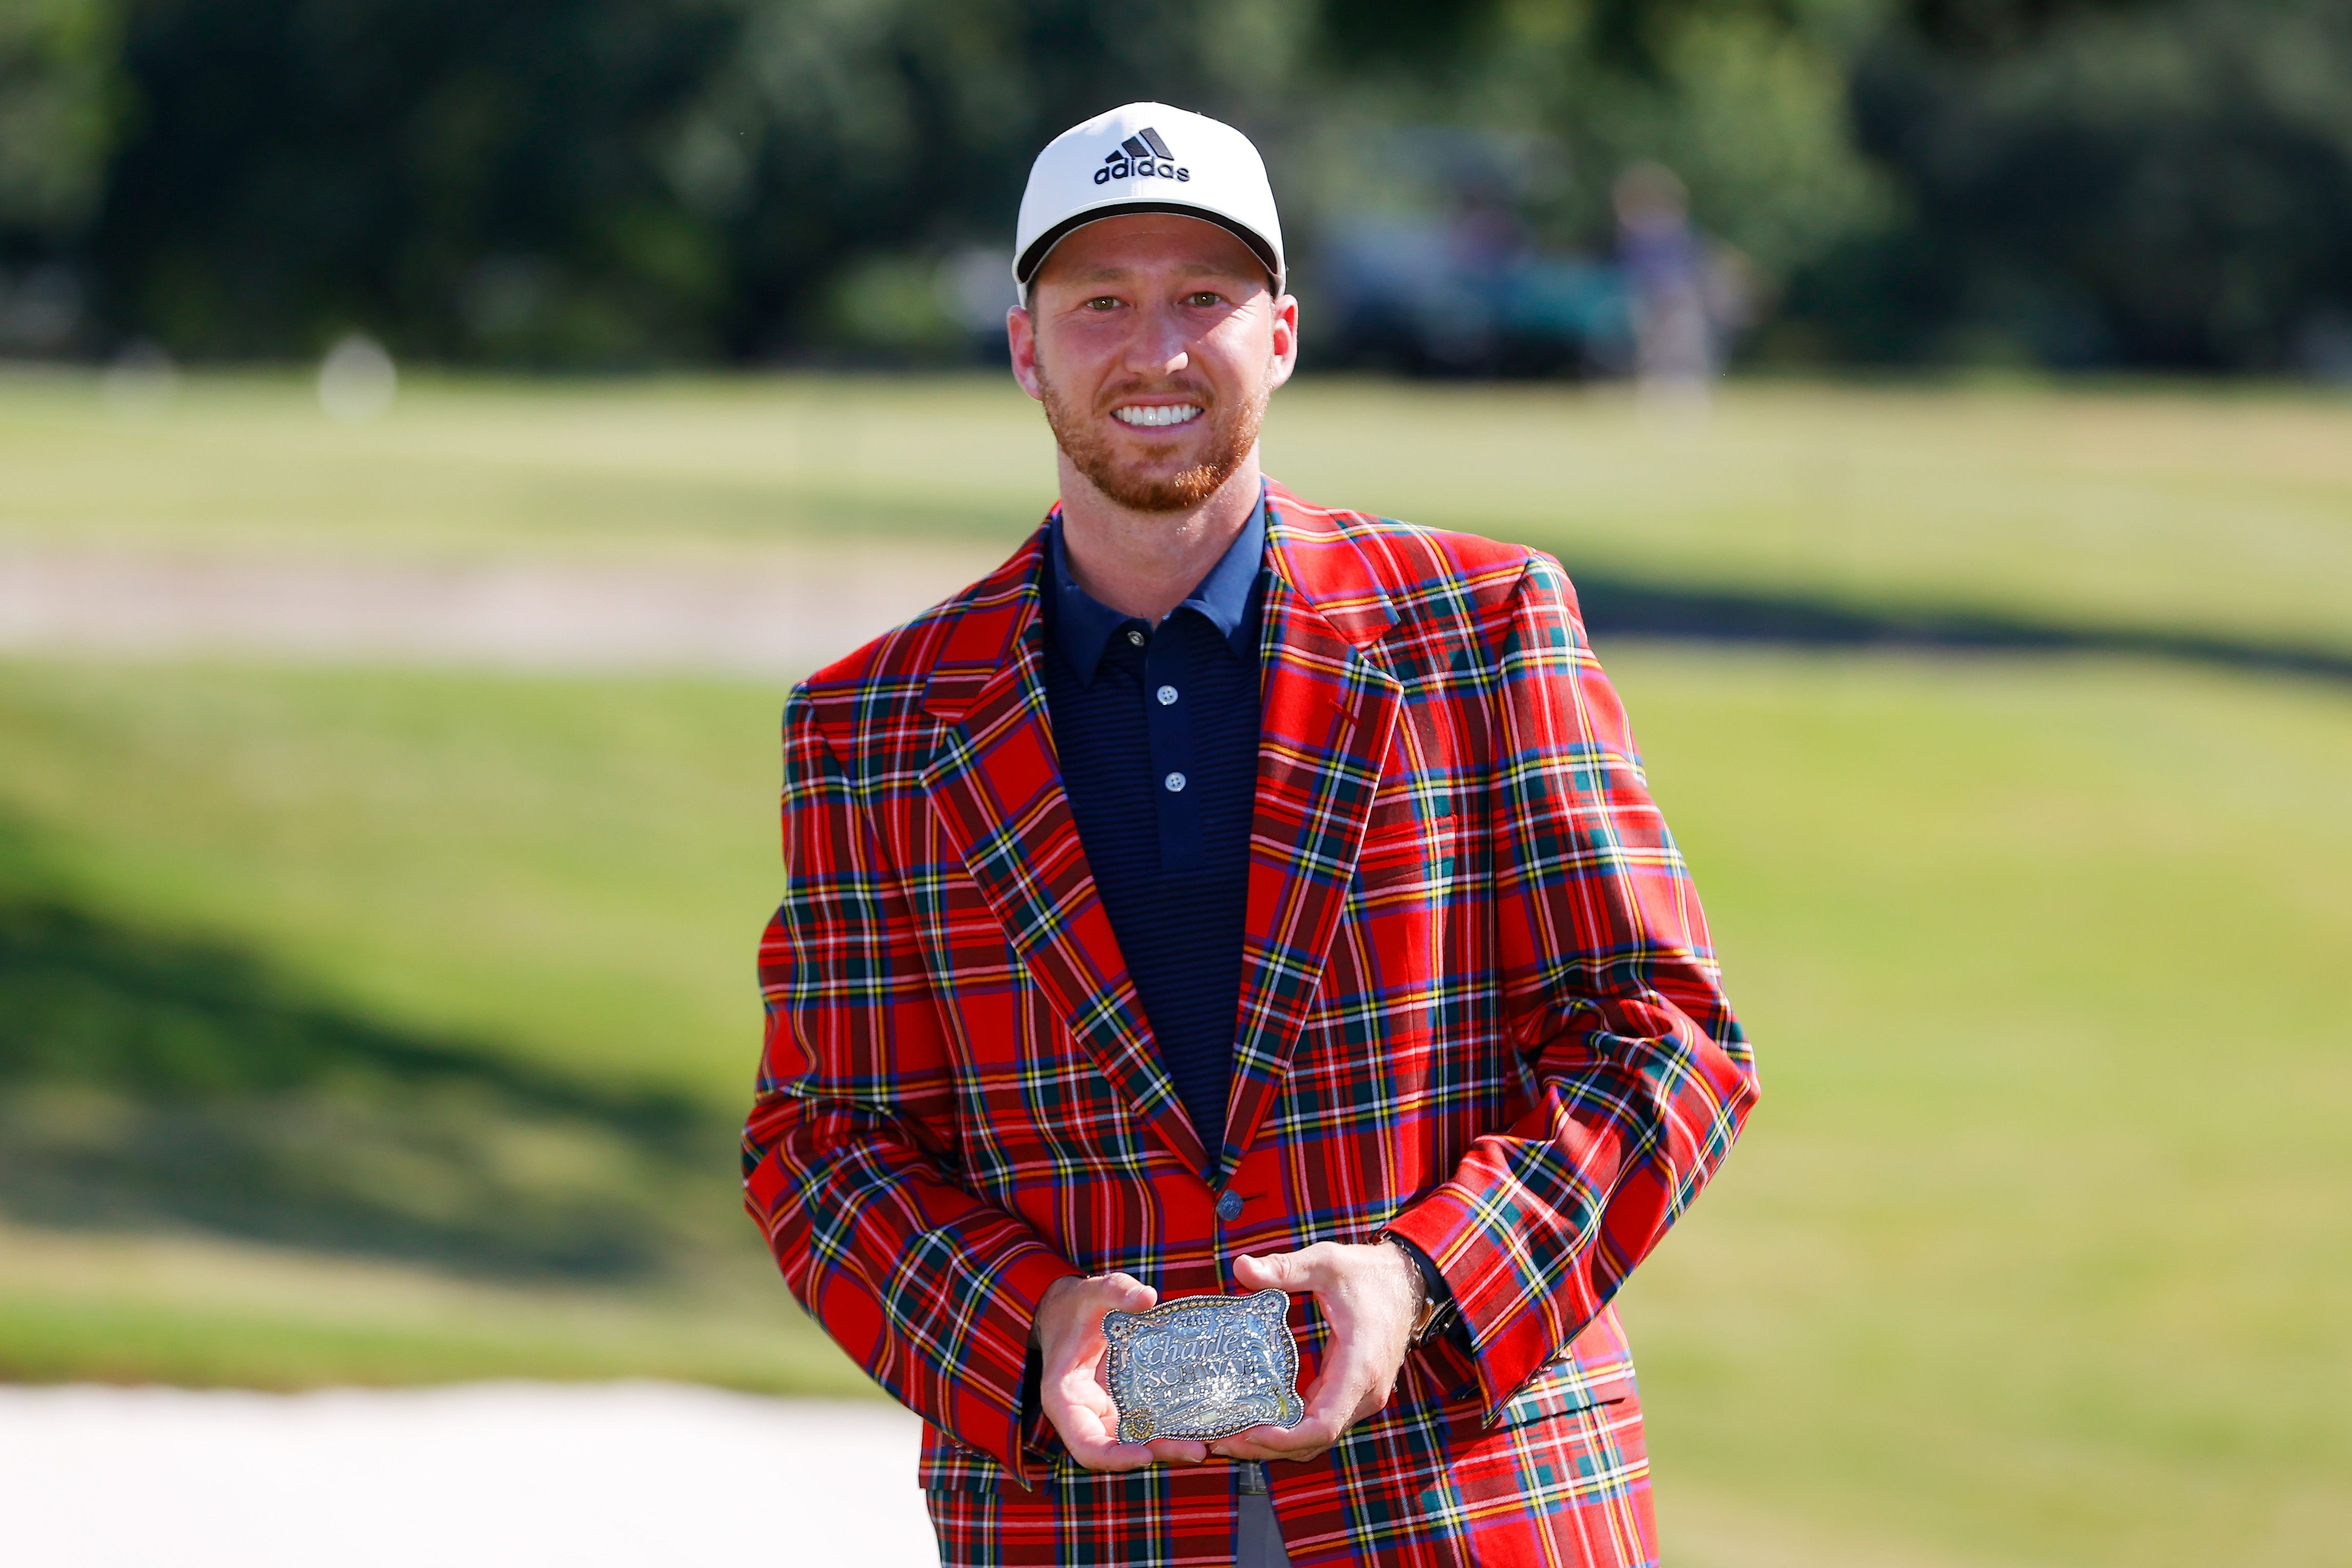 Daniel Berger with the plaid jacket and belt buckle after winning the Charles Schwab Challenge on June 14, 2020    Source: Getty Images